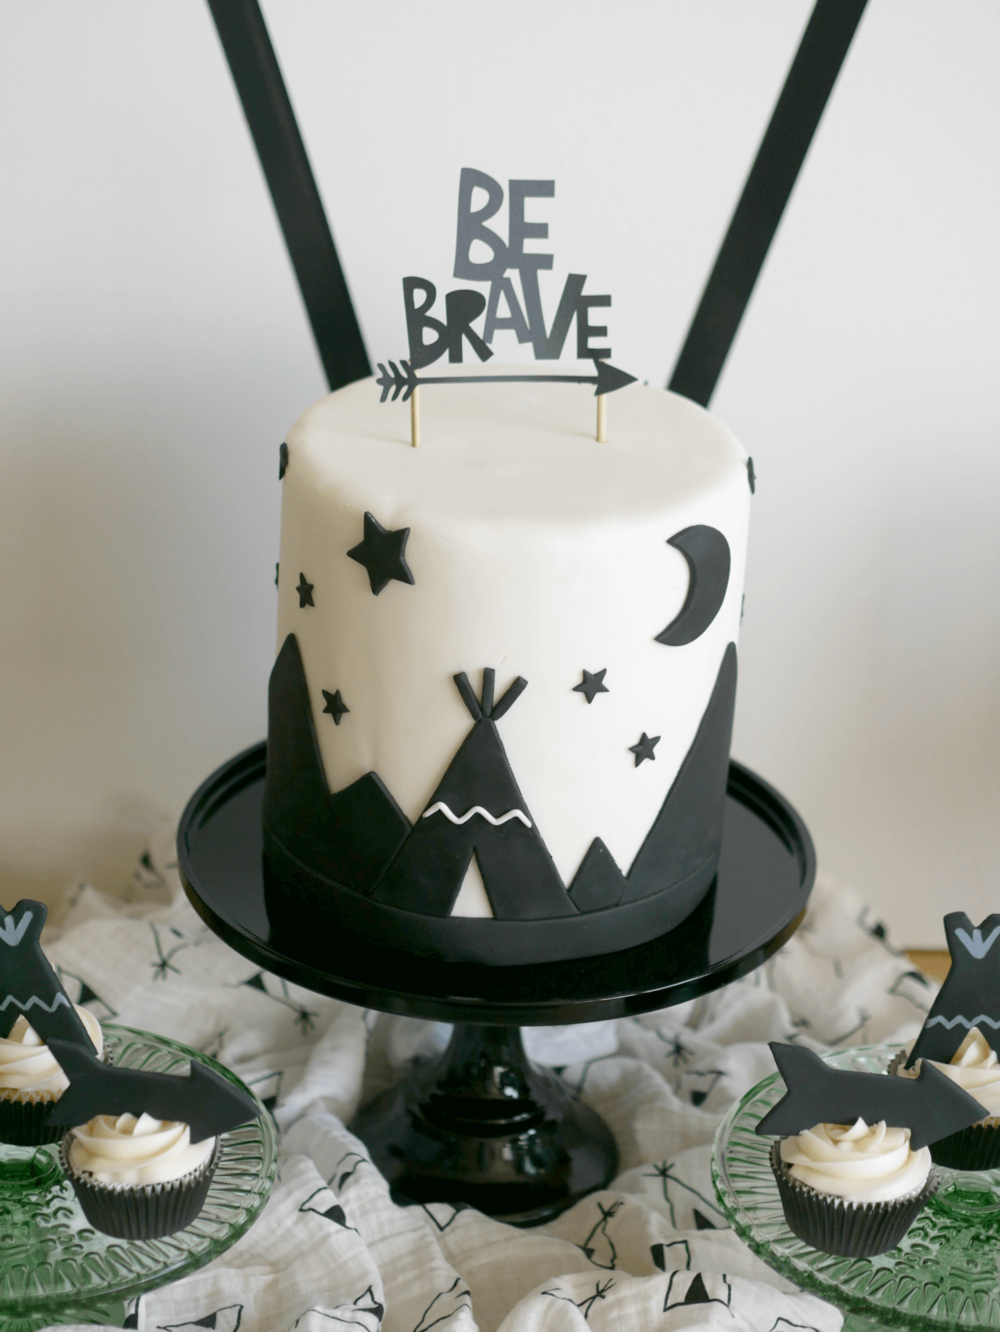 Be Brave cake idea / Tribal cake idea for boys / Twin party ideas / styled by Carolina from MINT Event Design / www.minteventdesign.com